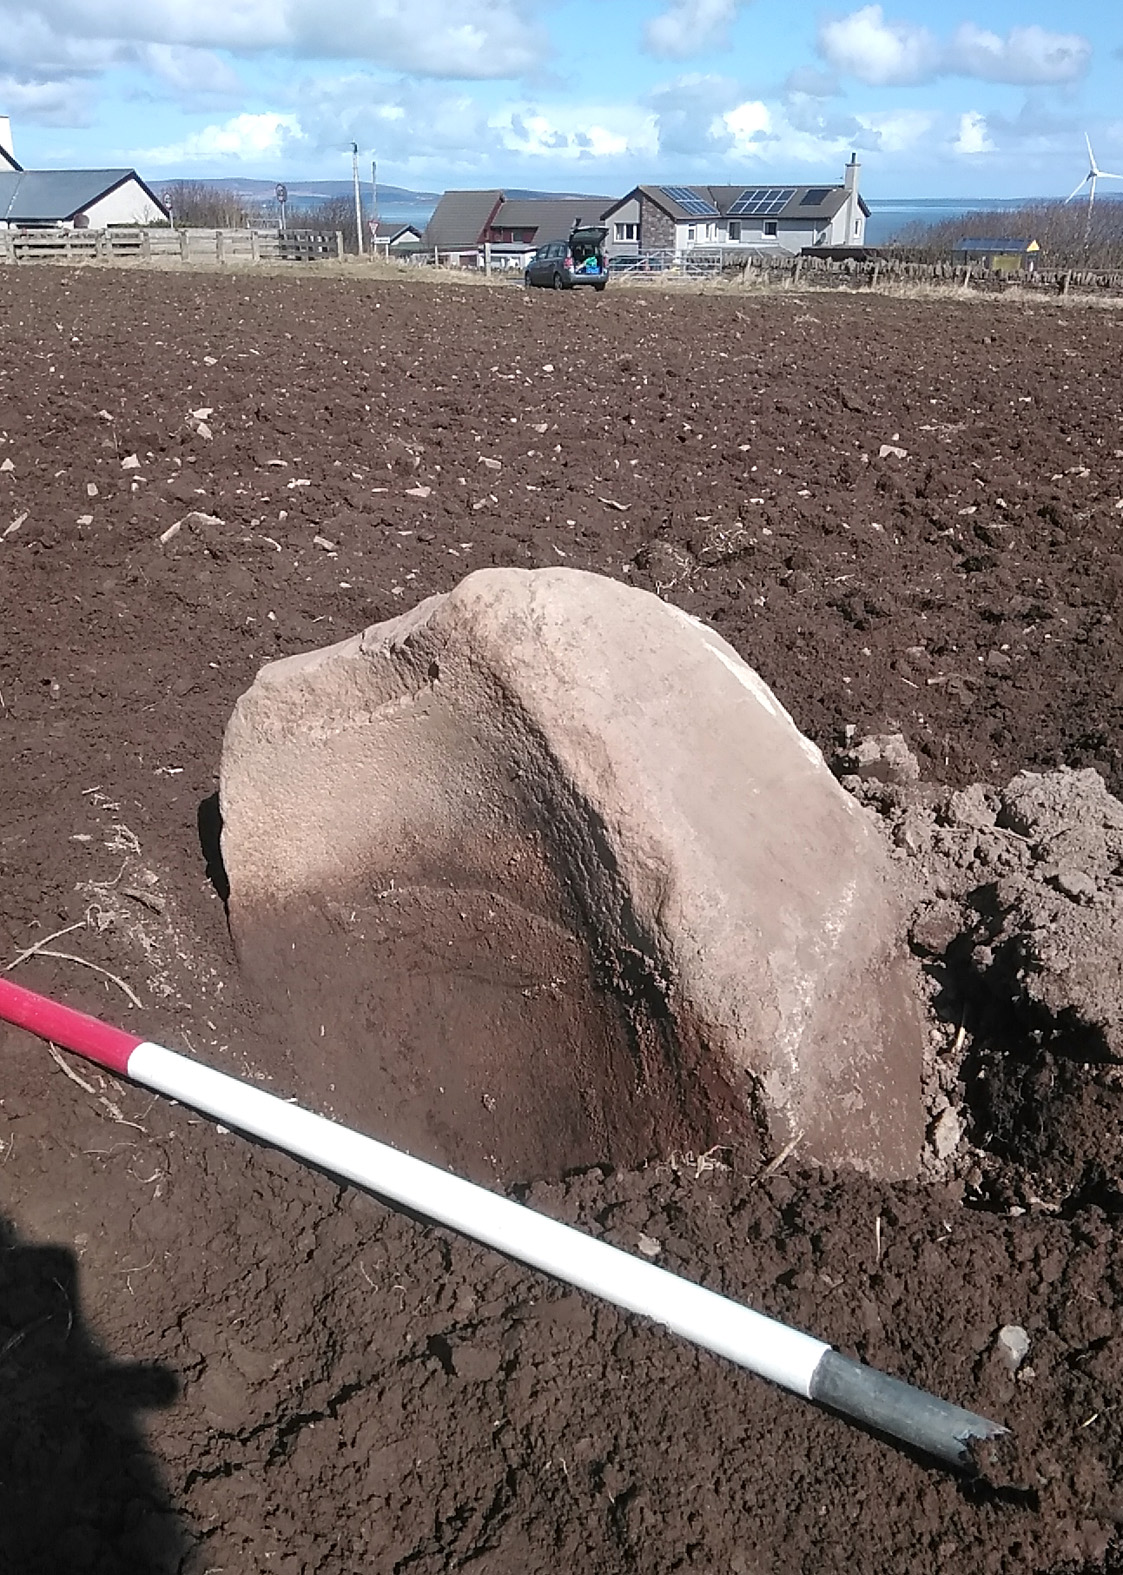 Huge quernstone unearthed in Orkney reveals Early Neolithic site